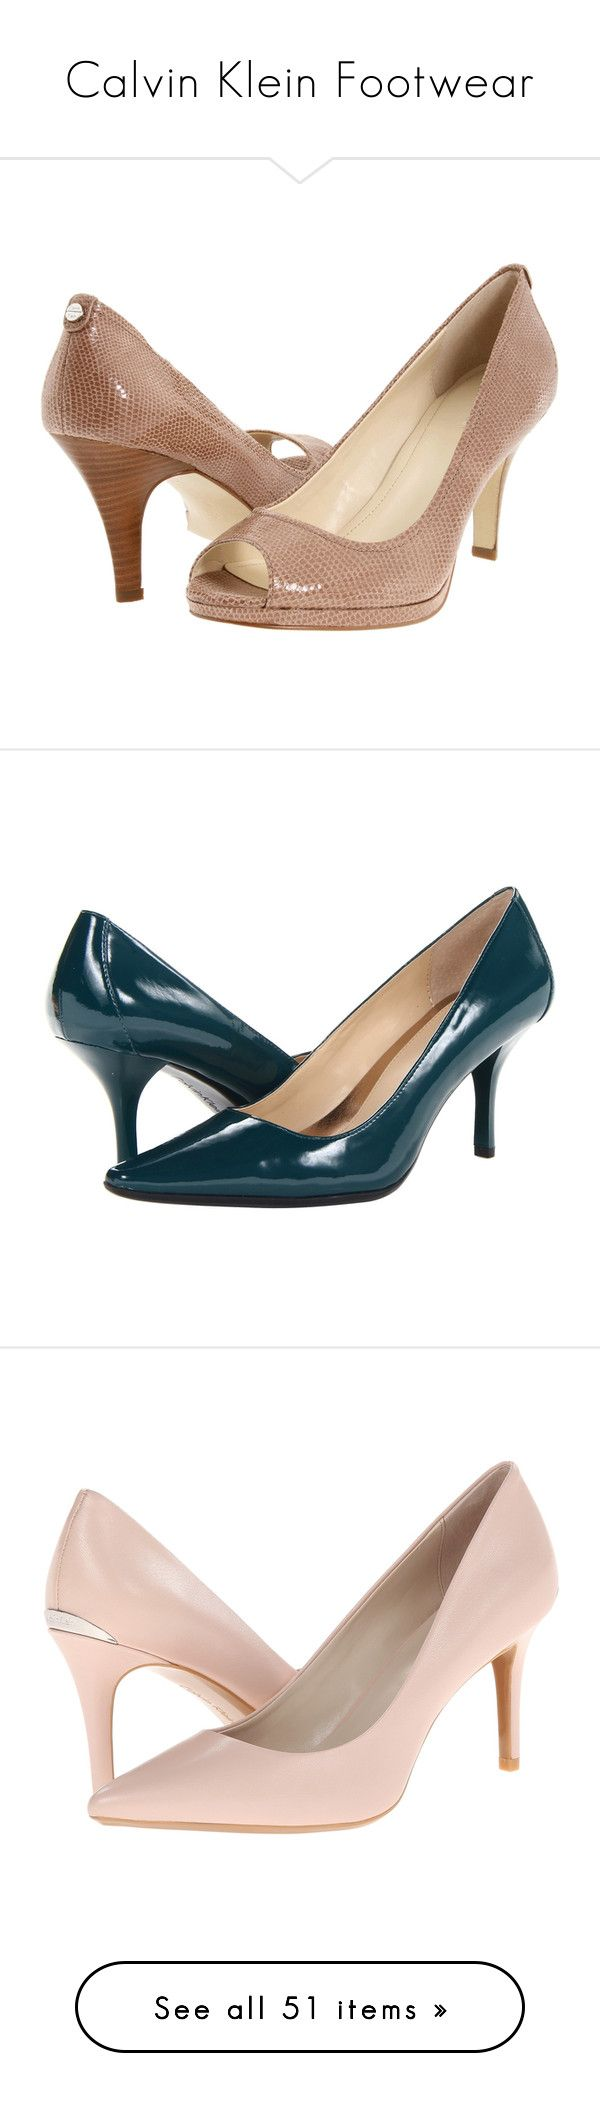 Armani Green Sudede Shoes With White Platform